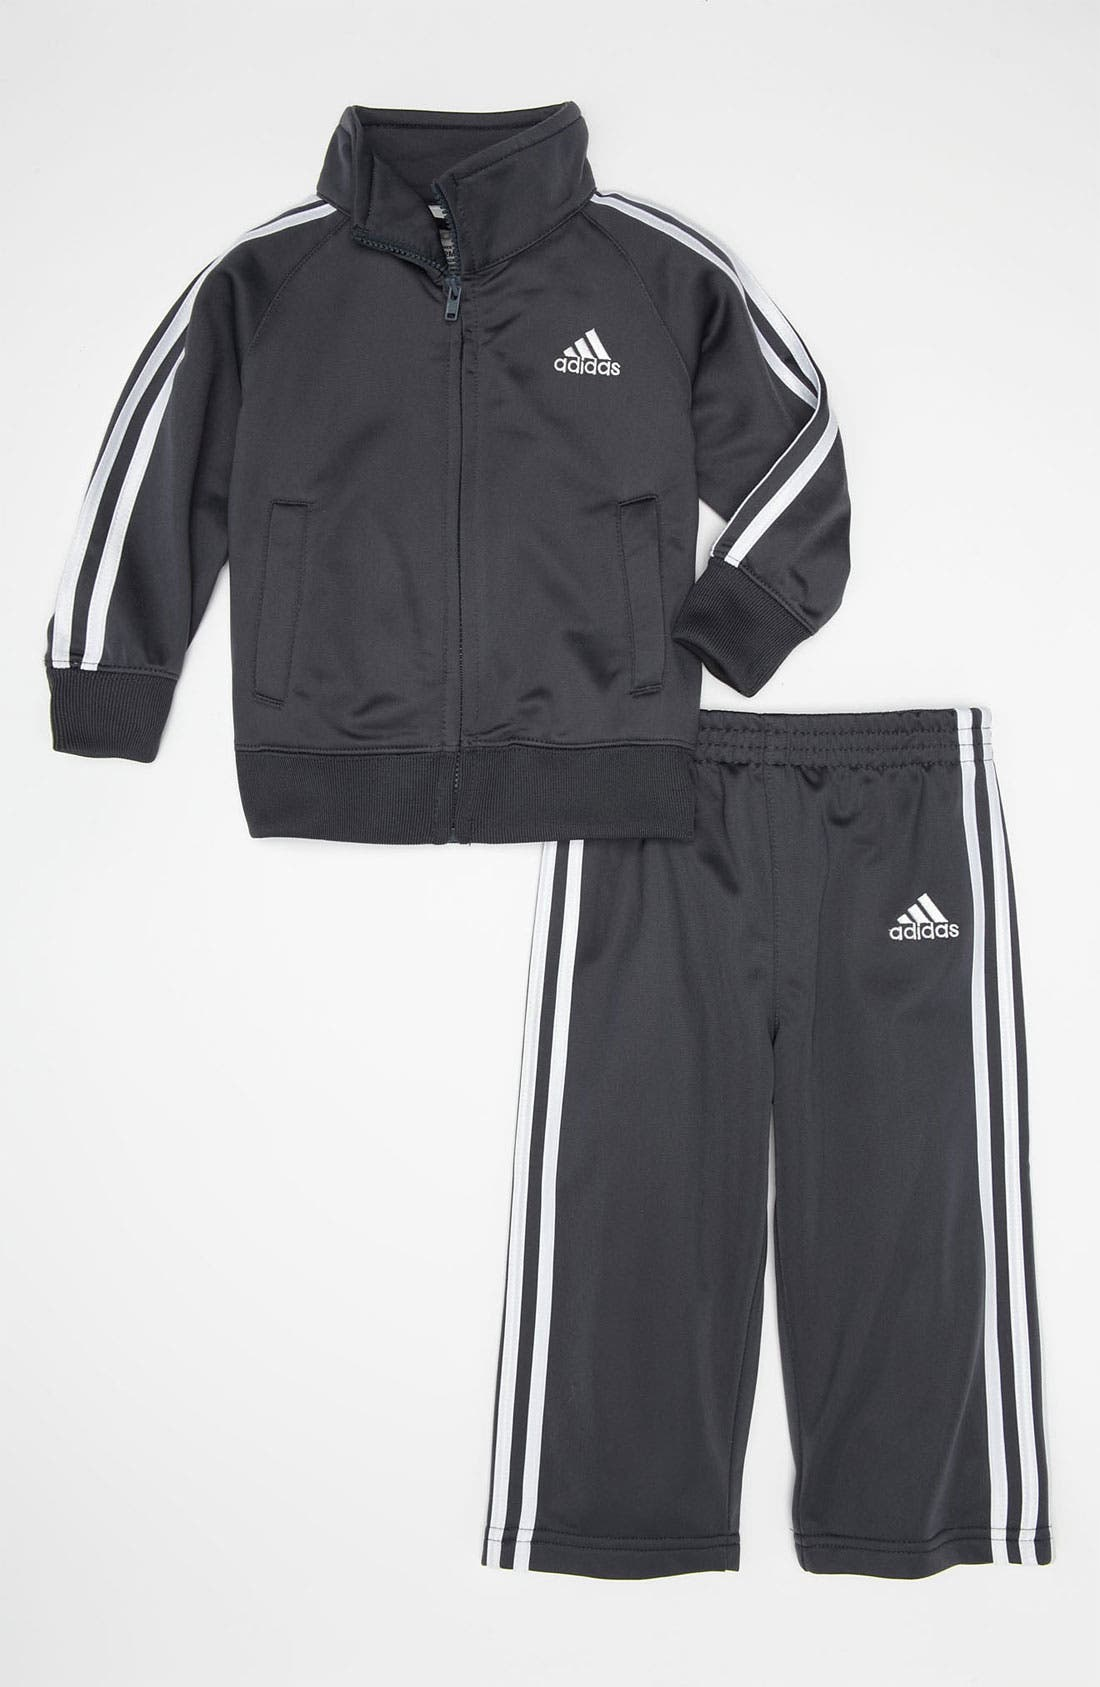 Main Image - adidas Tricot Jacket & Pants (Infant)